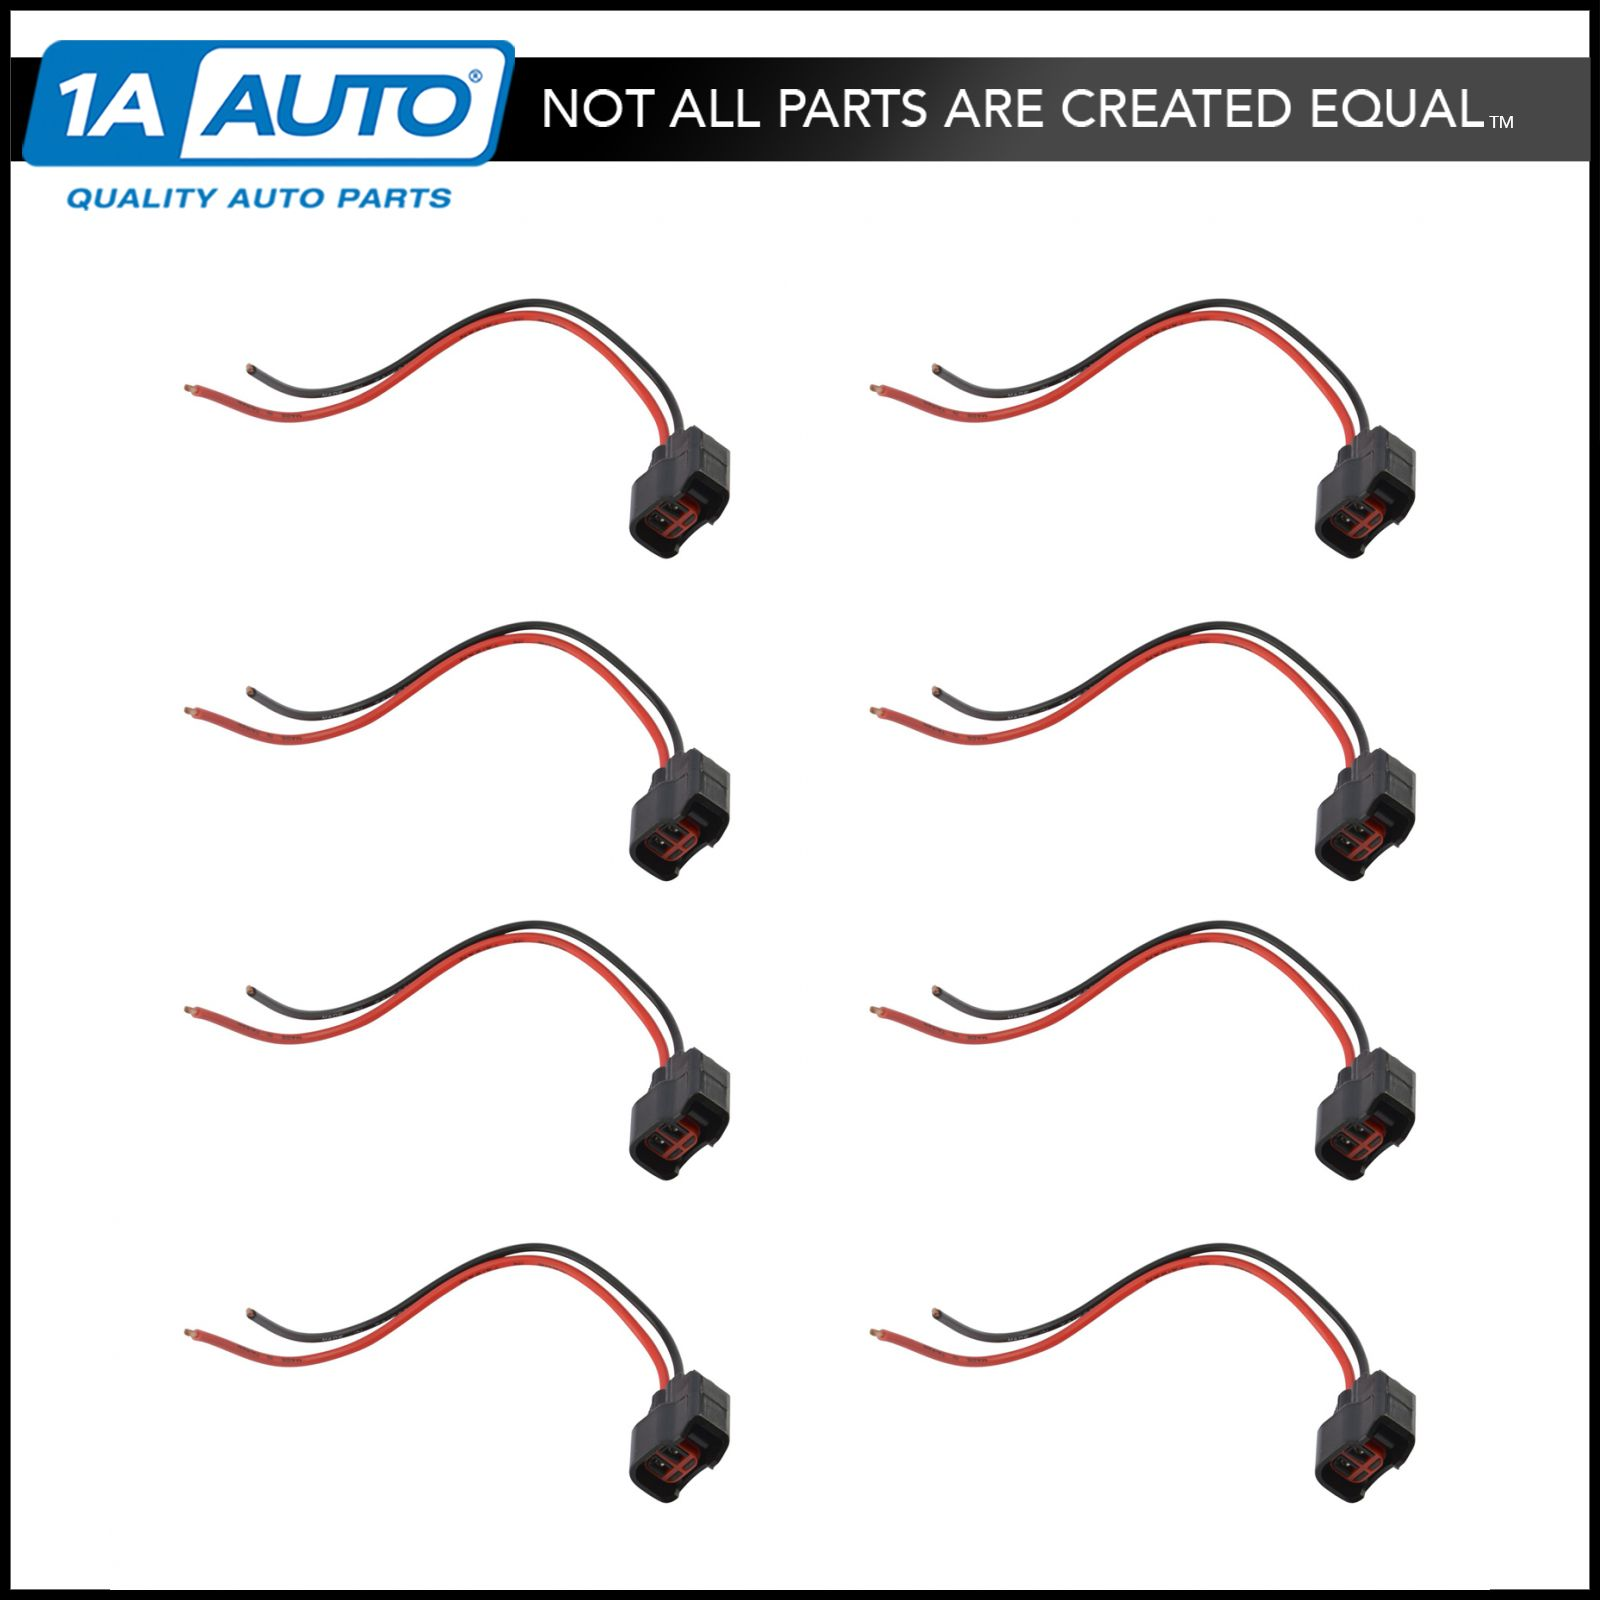 Fuel Injector Pigtail Harness Kit Set of 8 for Chevy GMC Cadillac Ford Dodge EV6